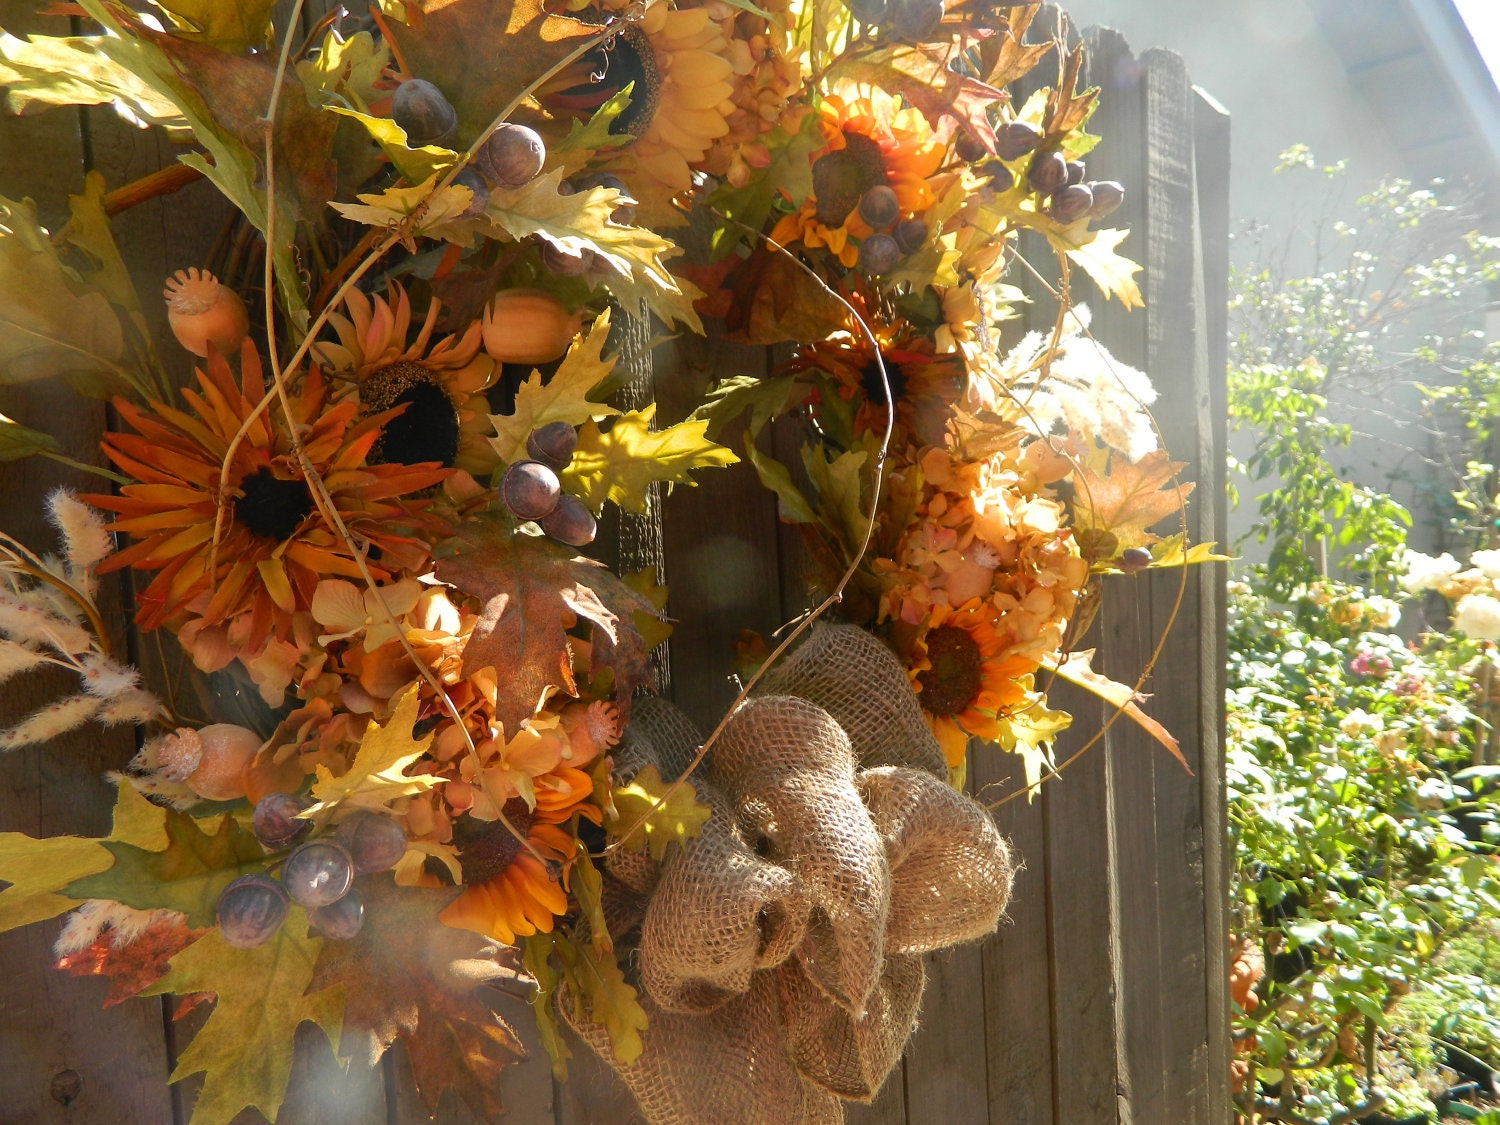 Sunflower home decor dream house experience Fall autumn door wreaths